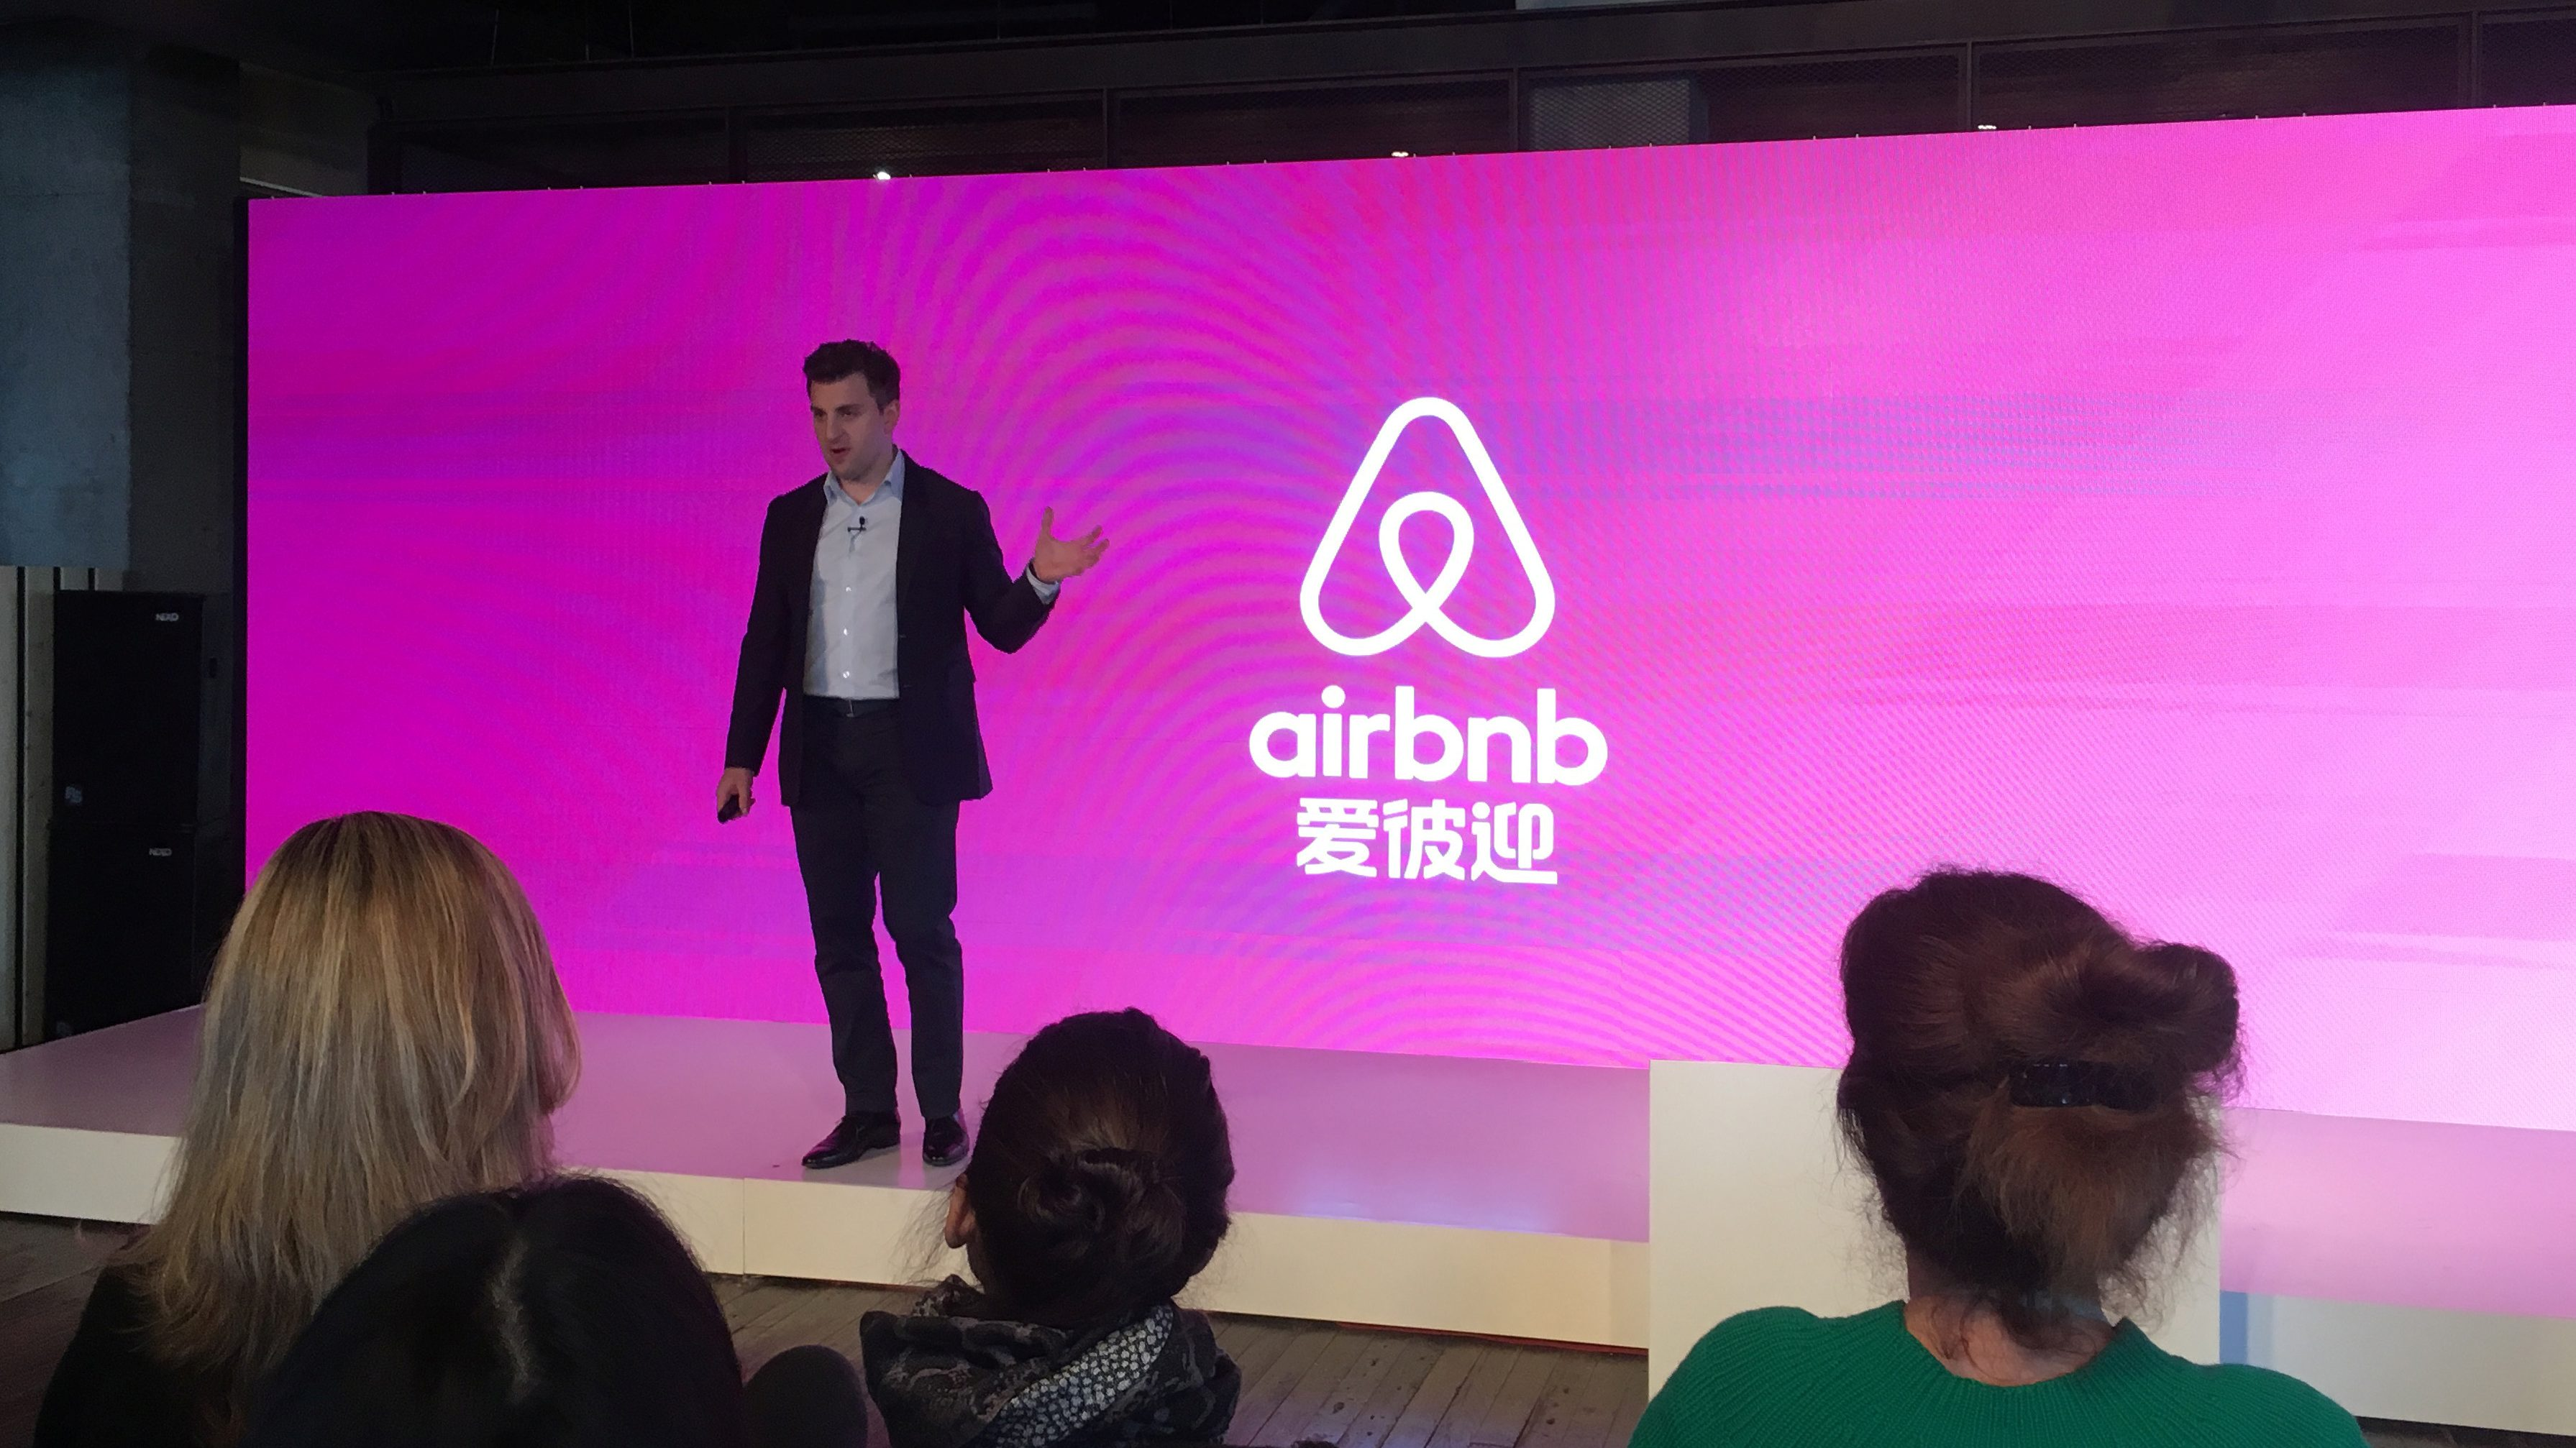 Airbnb Co-Founder and CEO Brian Chesky speaks at an event to launch the brand's Chinese name, in Shanghai, China, March 22, 2017.